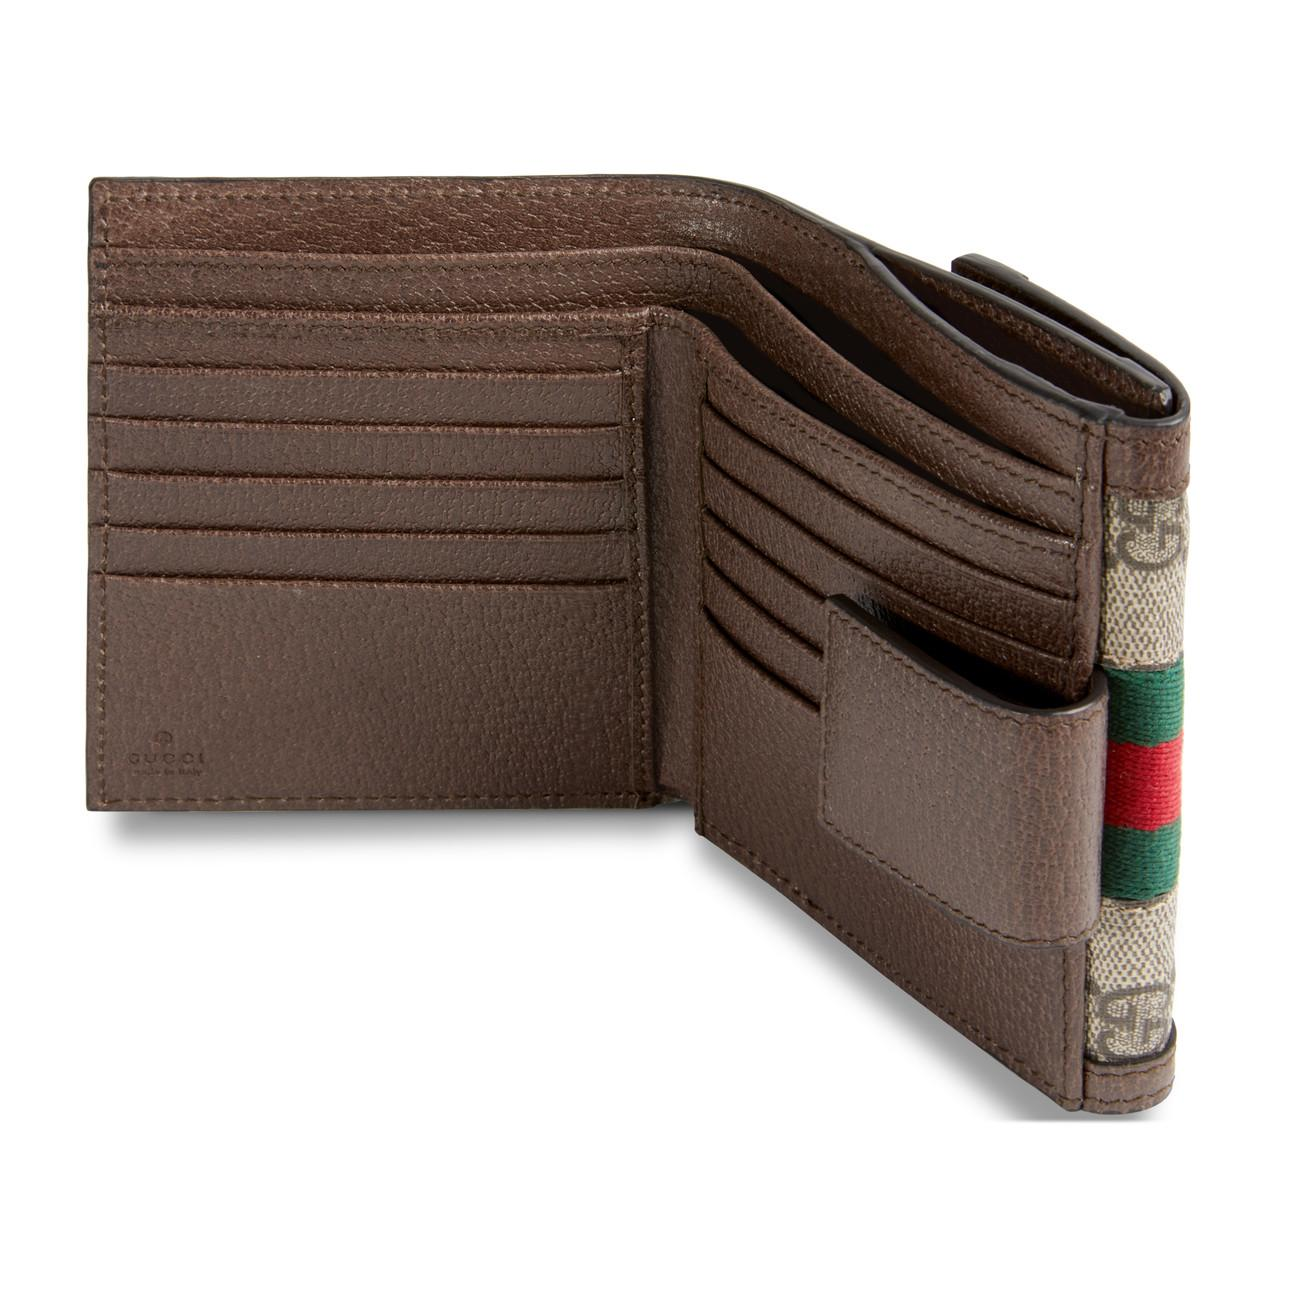 e6cf8ab584c00b Gucci Ophidia GG French Flap Wallet Beige in Natural - Lyst